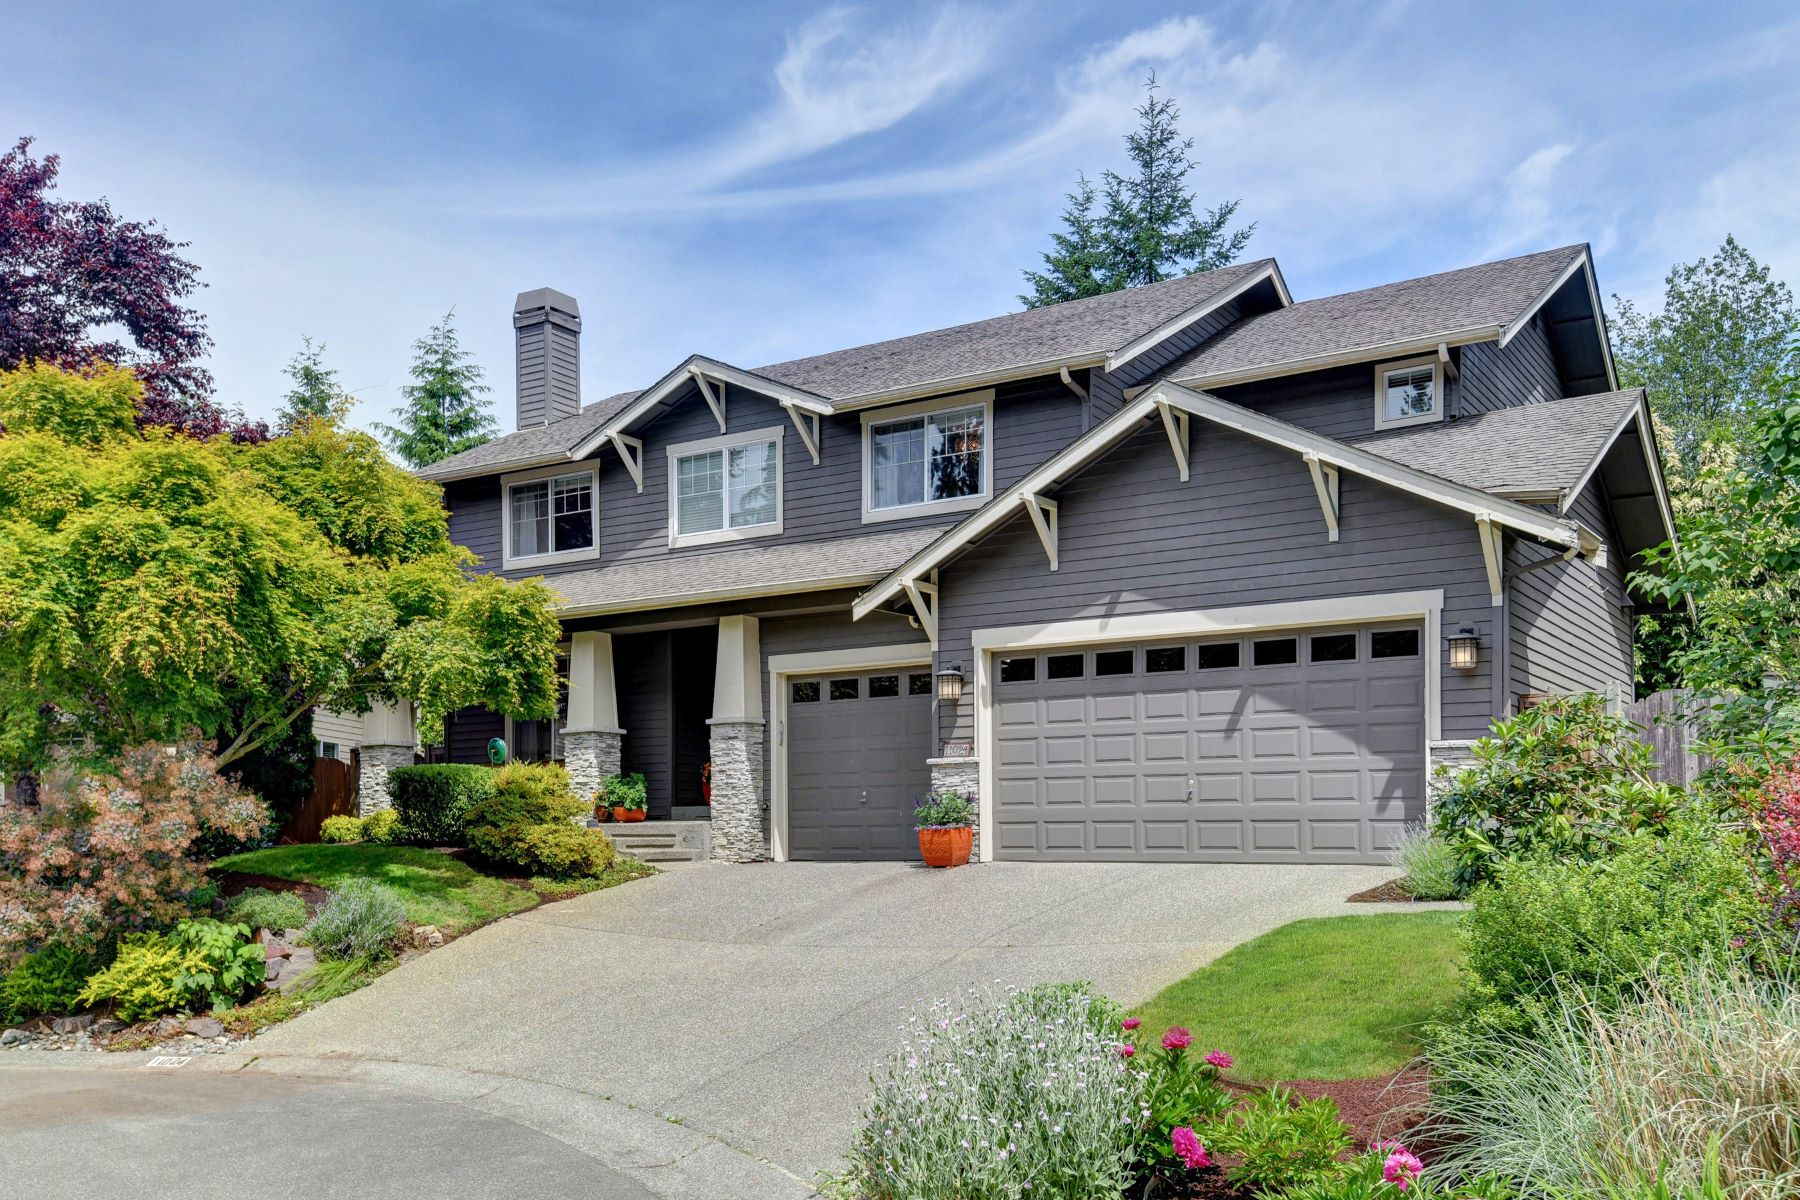 Single Family Homes for Sale at Education Hill 11024 116th Place NE Redmond, Washington 98052 United States